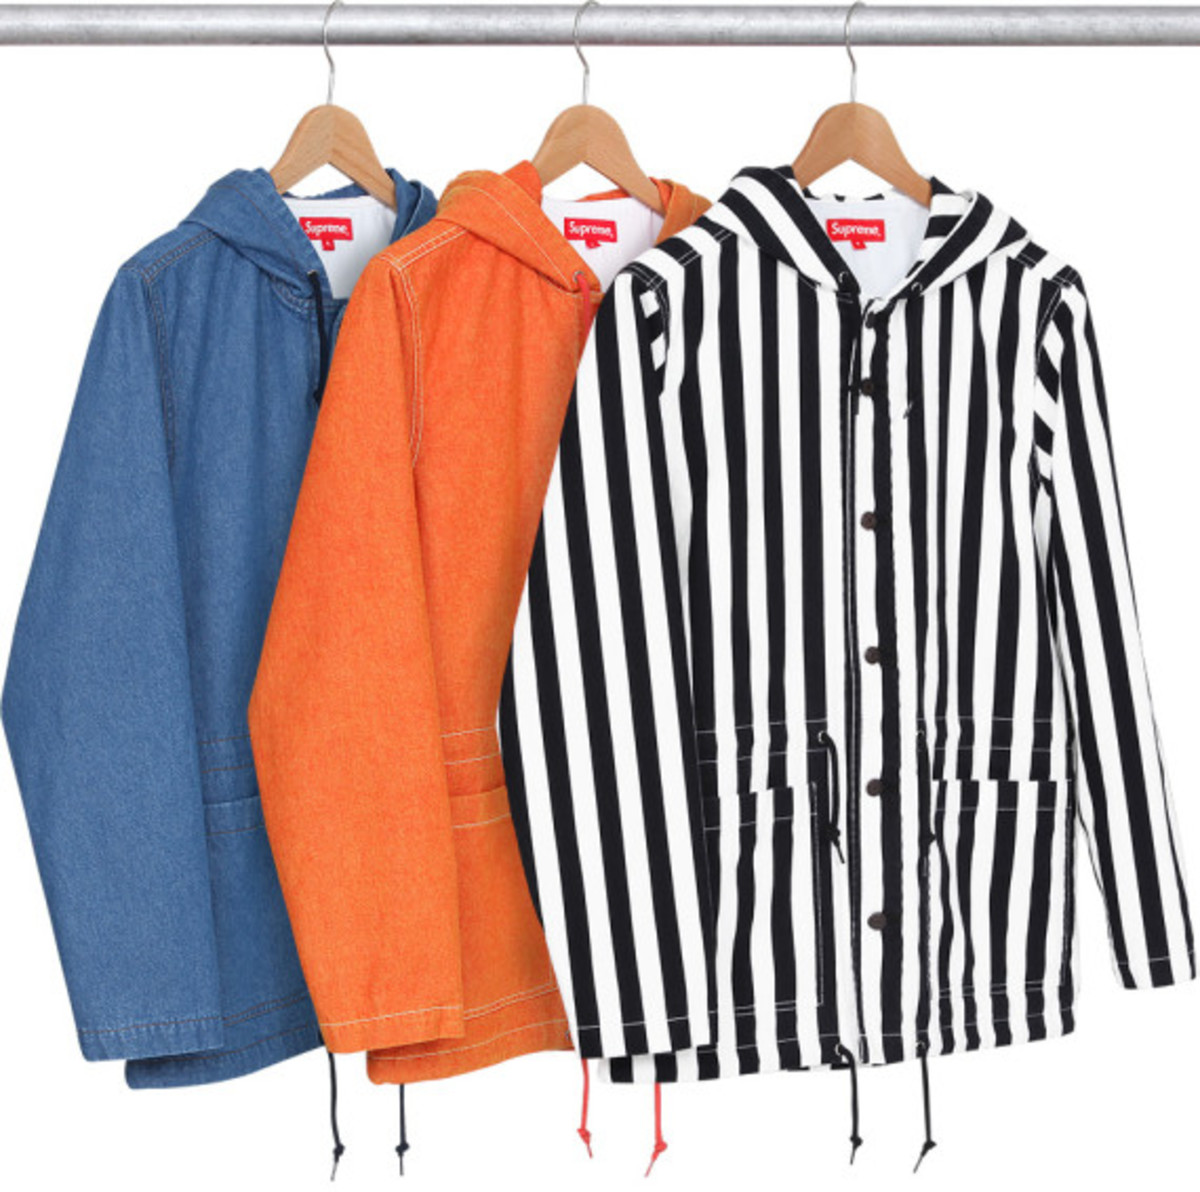 supreme-spring-summer-2014-outerwear-collection-10